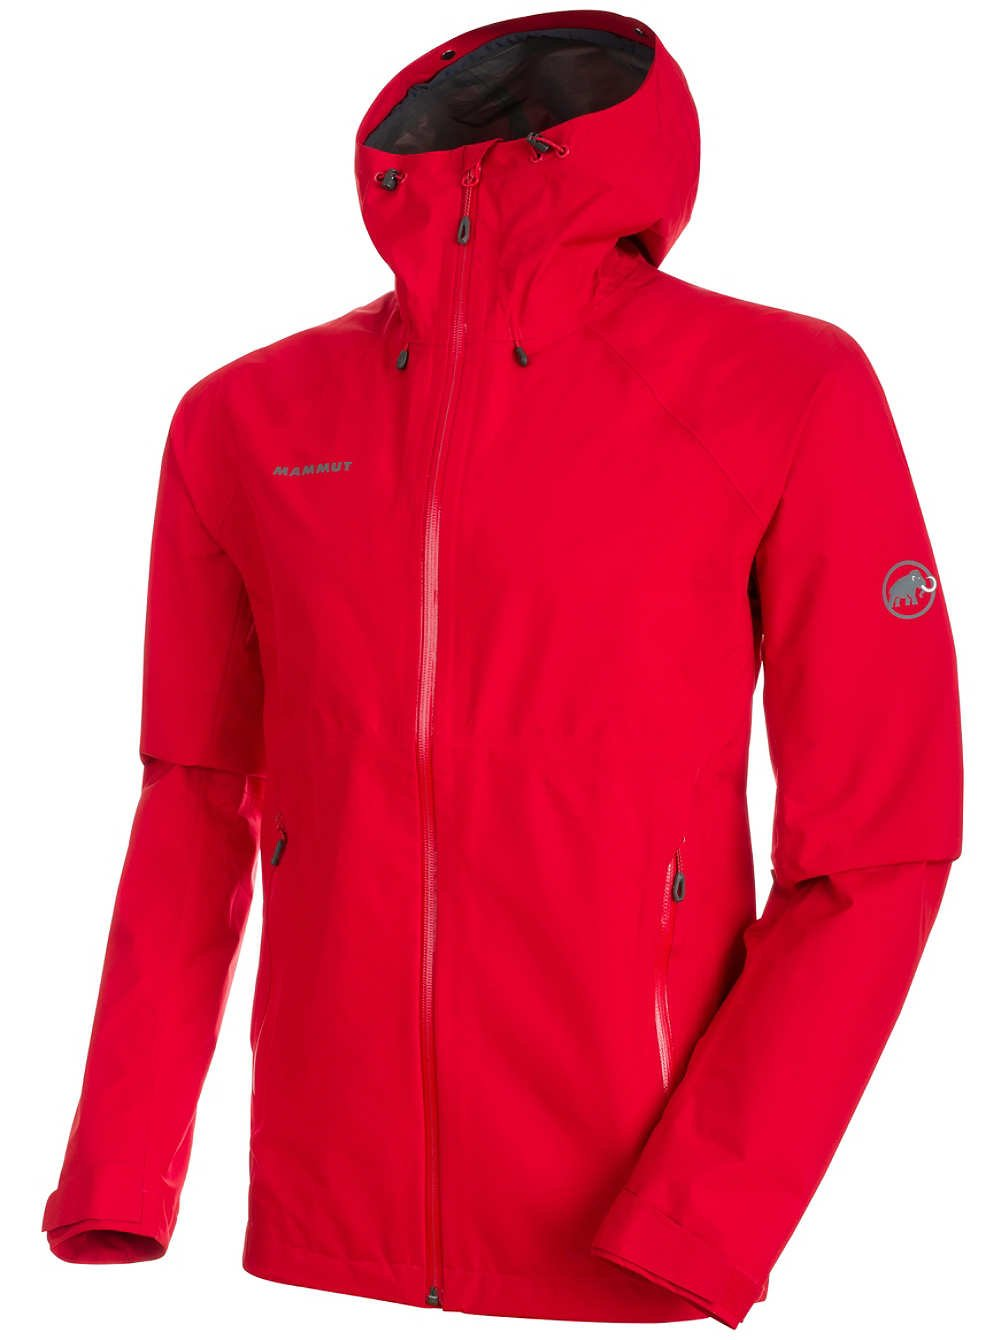 ◎マムート(MAMMUT) Convey Tour HS Hooded Jacket メンズ 1010-26030-0001 ジャケット B078K1LLNQ Small|magma magma Small